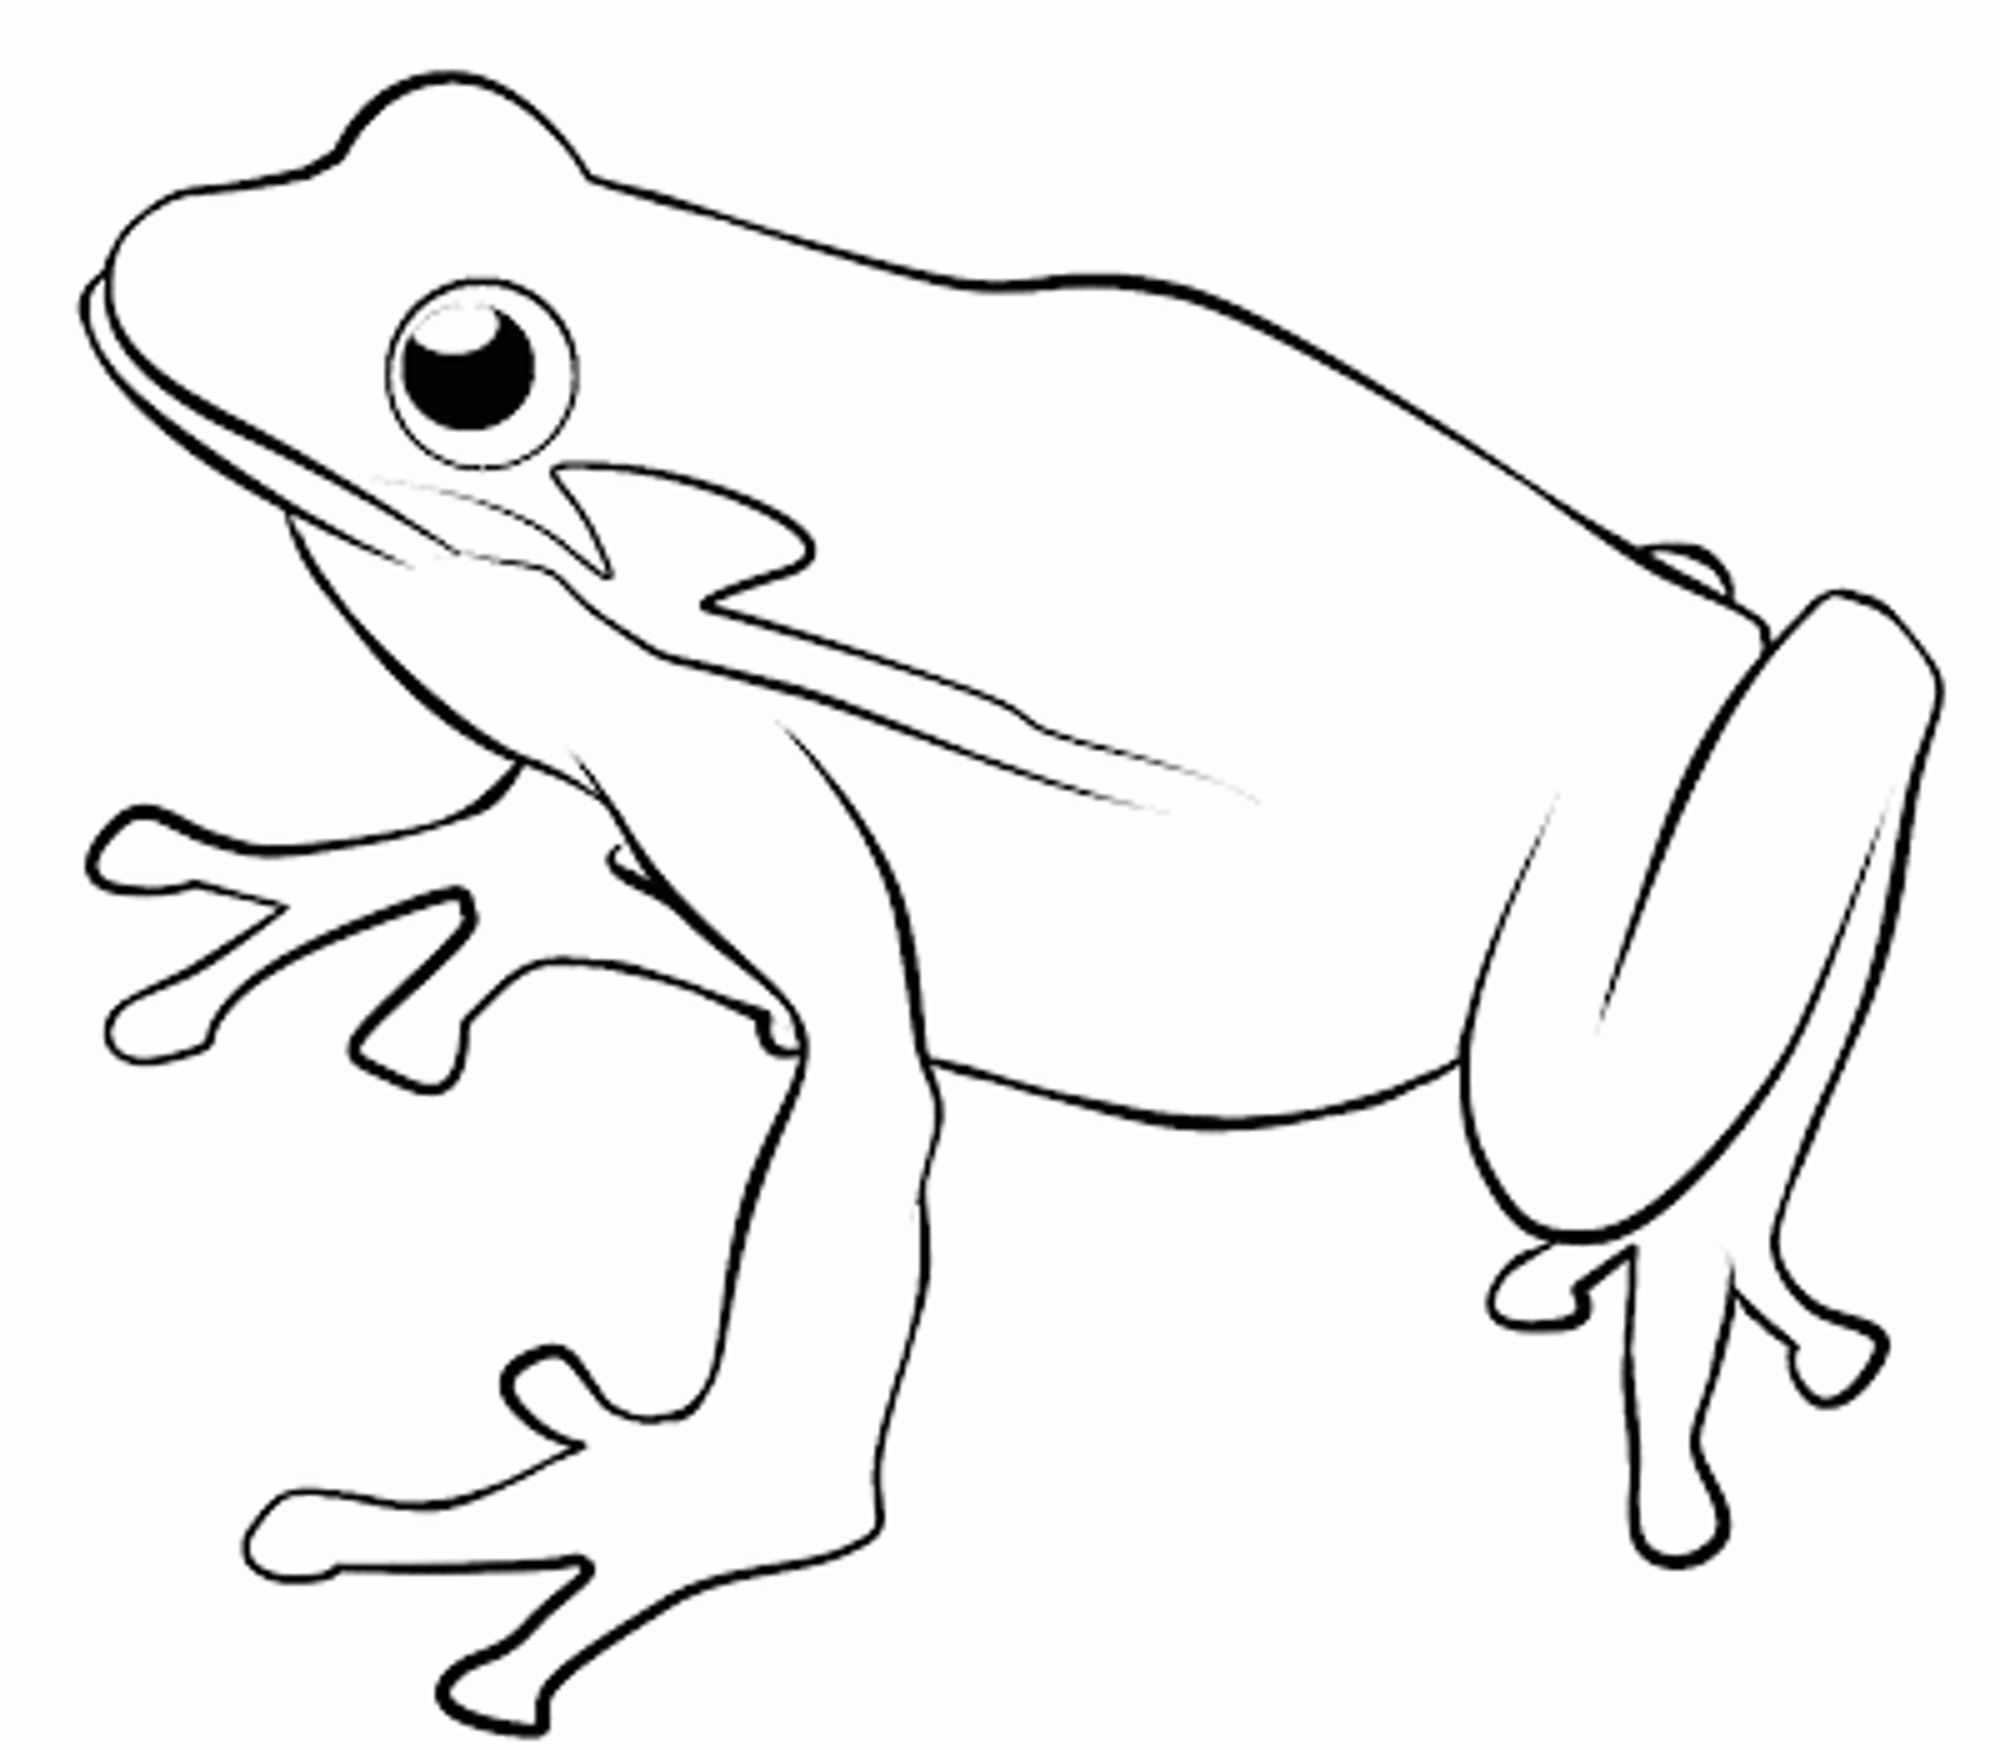 2000x1750 Free Frog Coloring Pages For Kids Frog Coloring Pages On With Hd